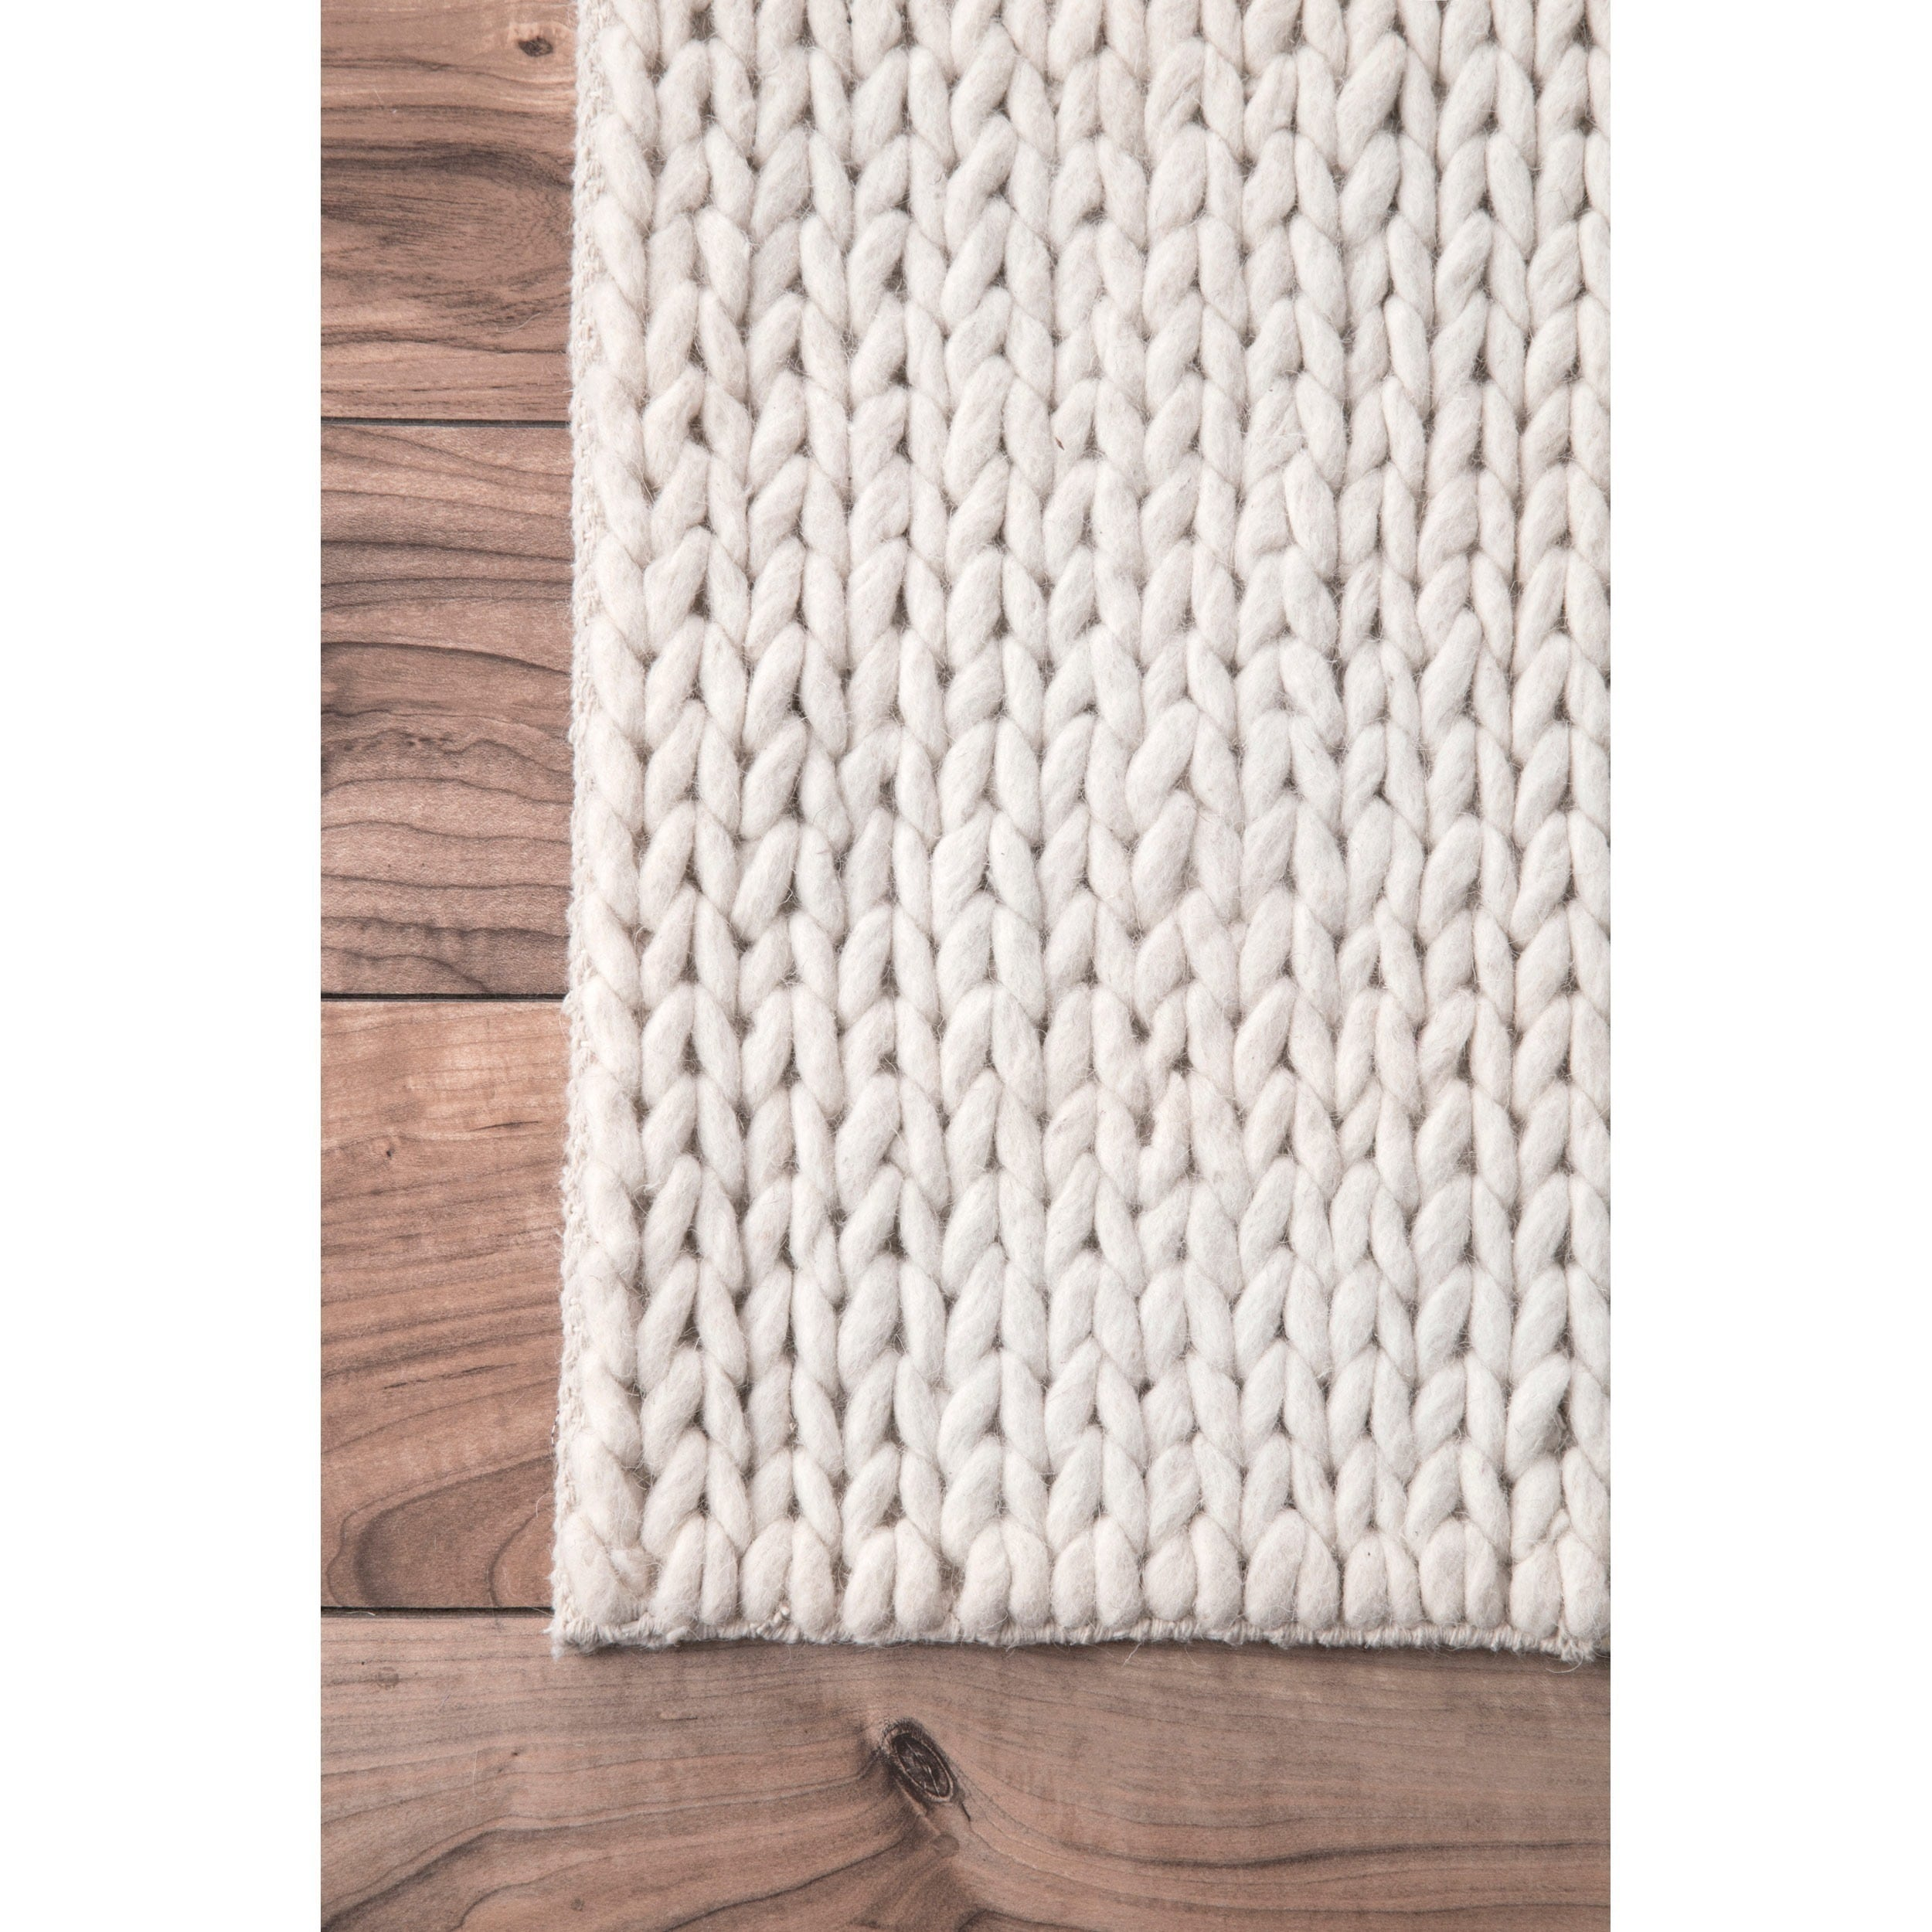 Nuloom Handmade Casual Braided Wool Area Rug On Free Shipping Today Com 10708020